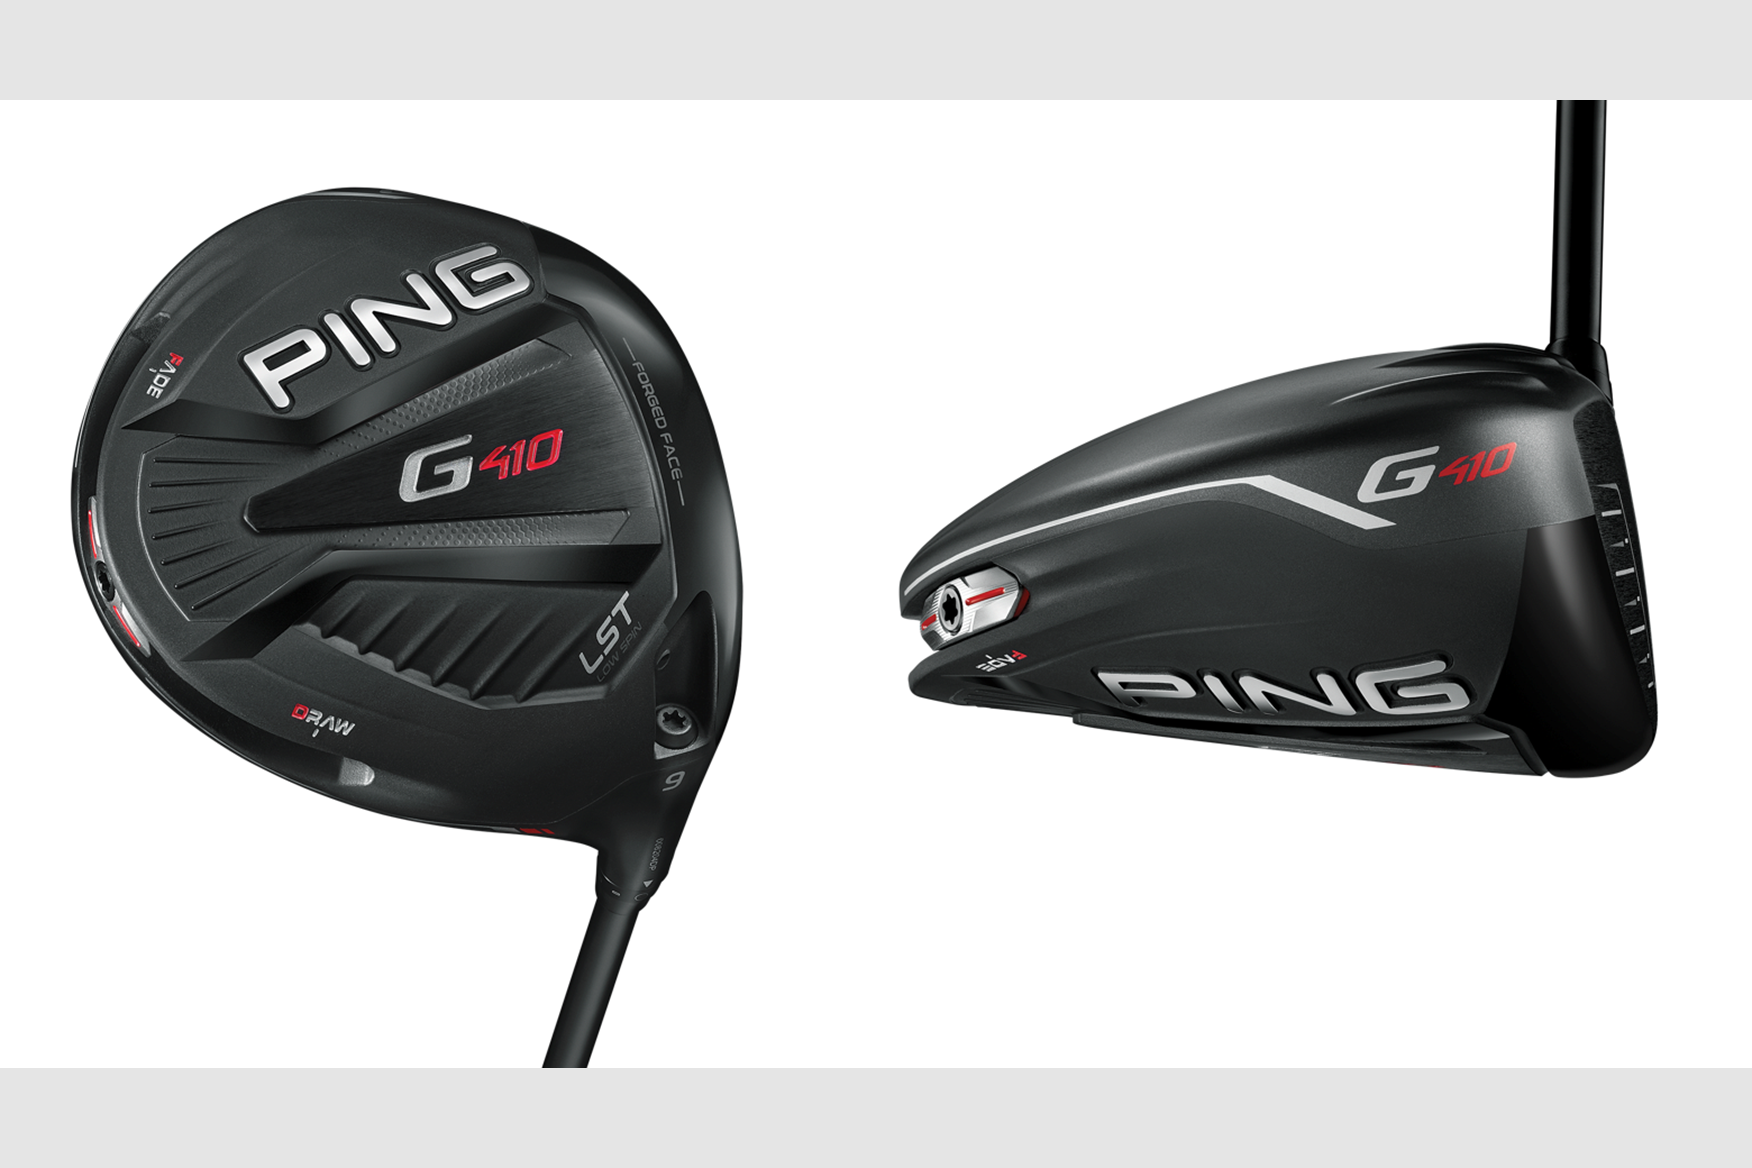 5e767c5241d Ping G410 LST Driver Review | Equipment Reviews | Today's Golfer